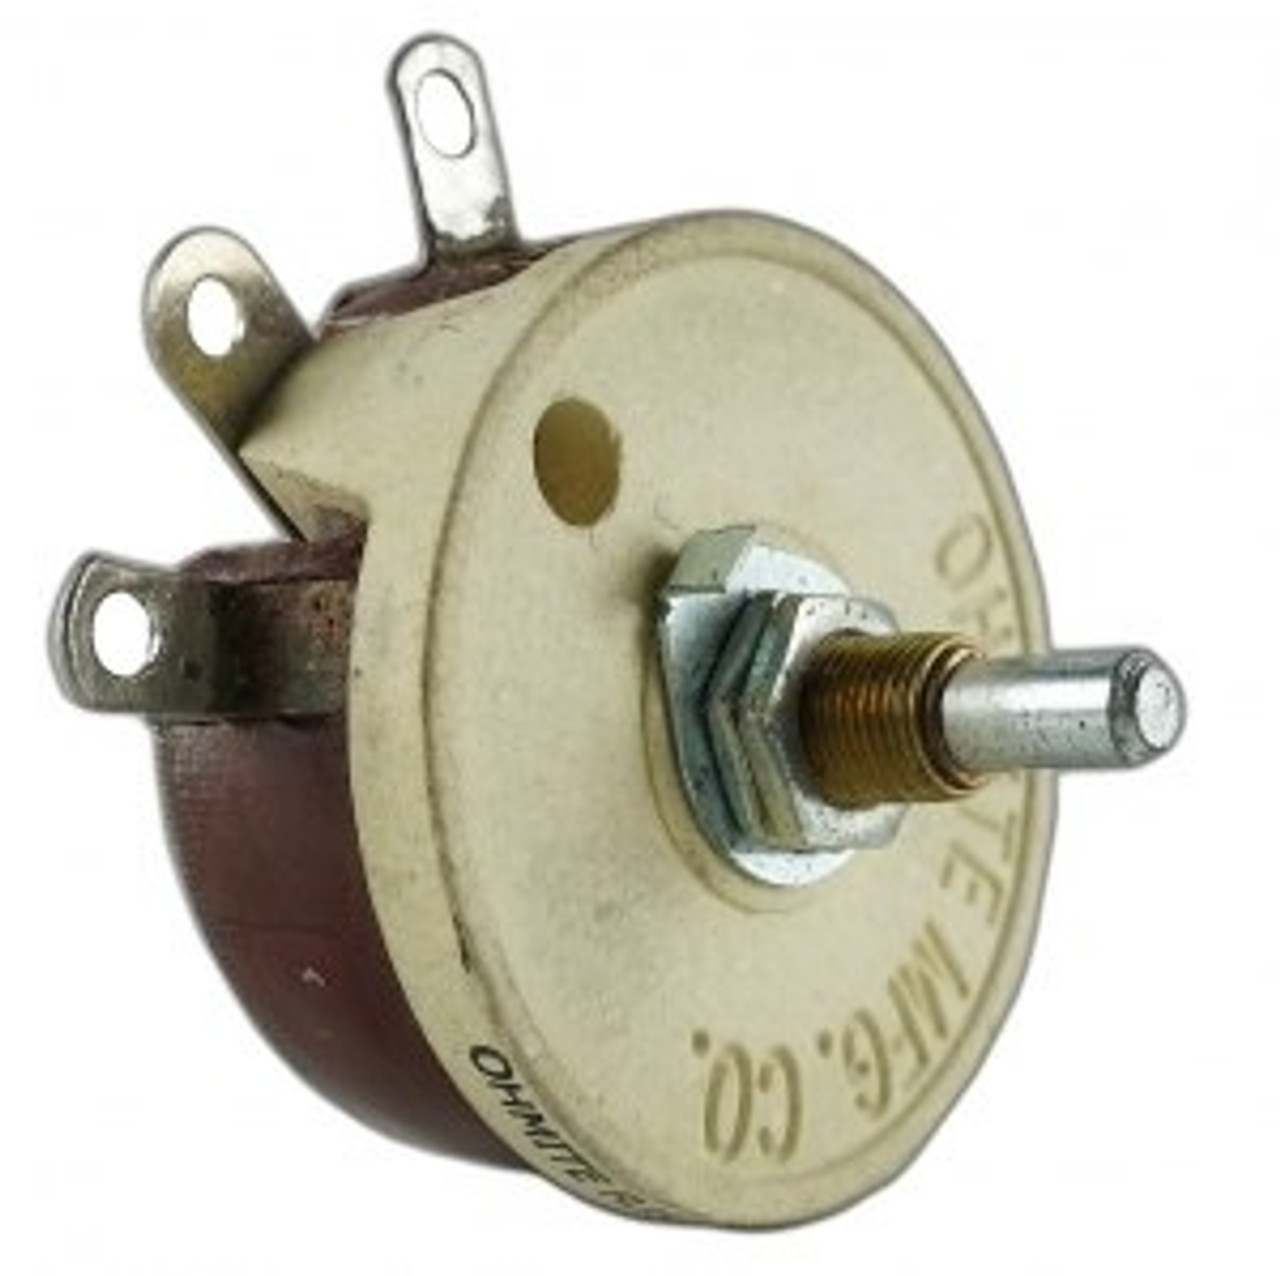 200 Ohm Rheostat for Rainbowair Model 5600